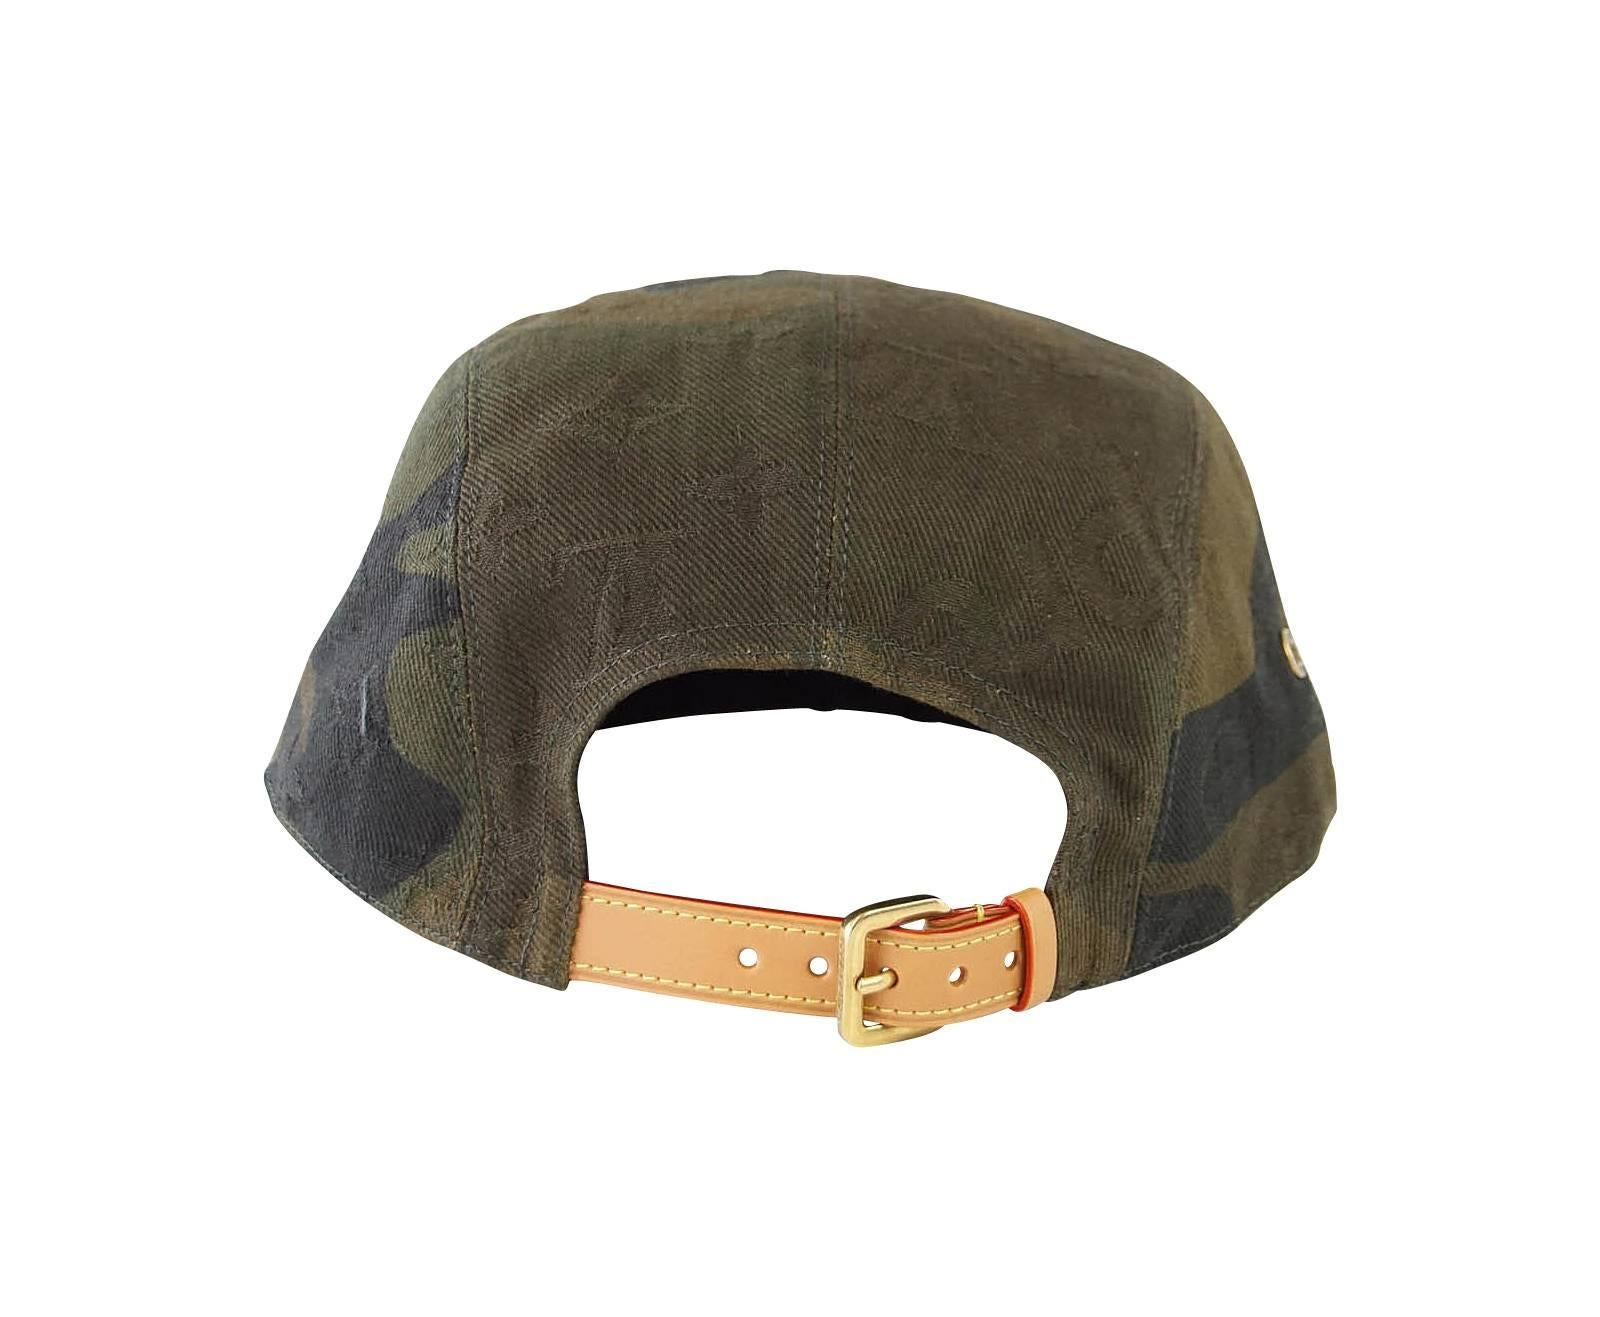 d35c6ca0360 Louis Vuitton Supreme X Limited Edition 5 Panels Camouflage Cap For Sale at  1stdibs